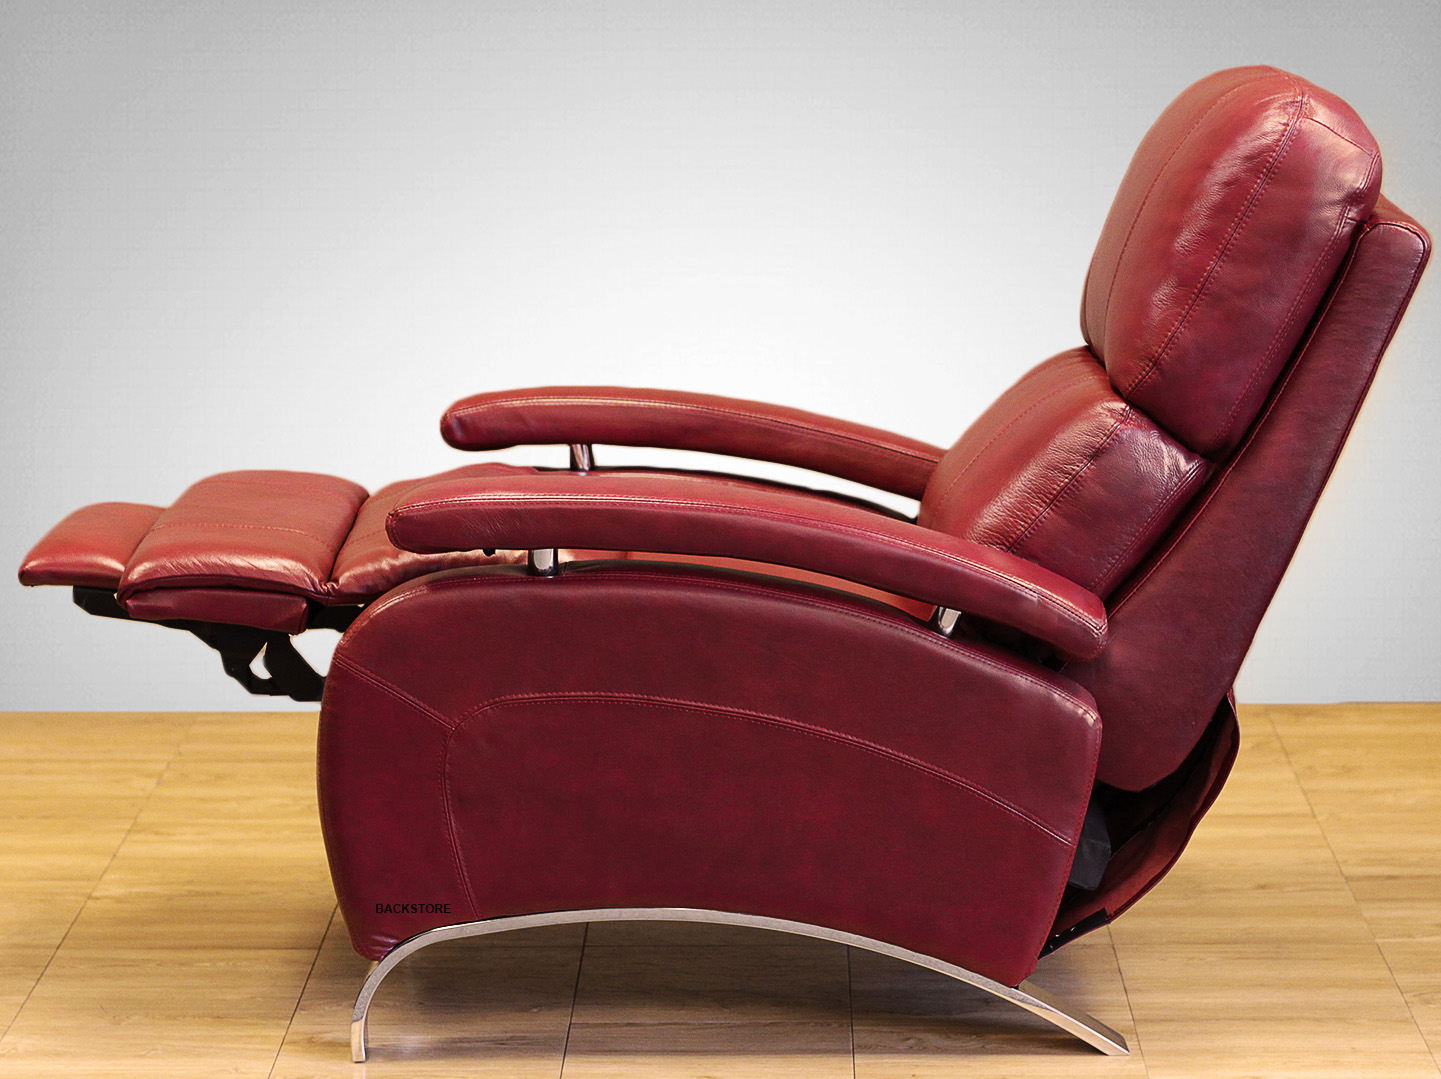 Barcalounger oracle ii genuine leather recliner lounger for Barcalounger